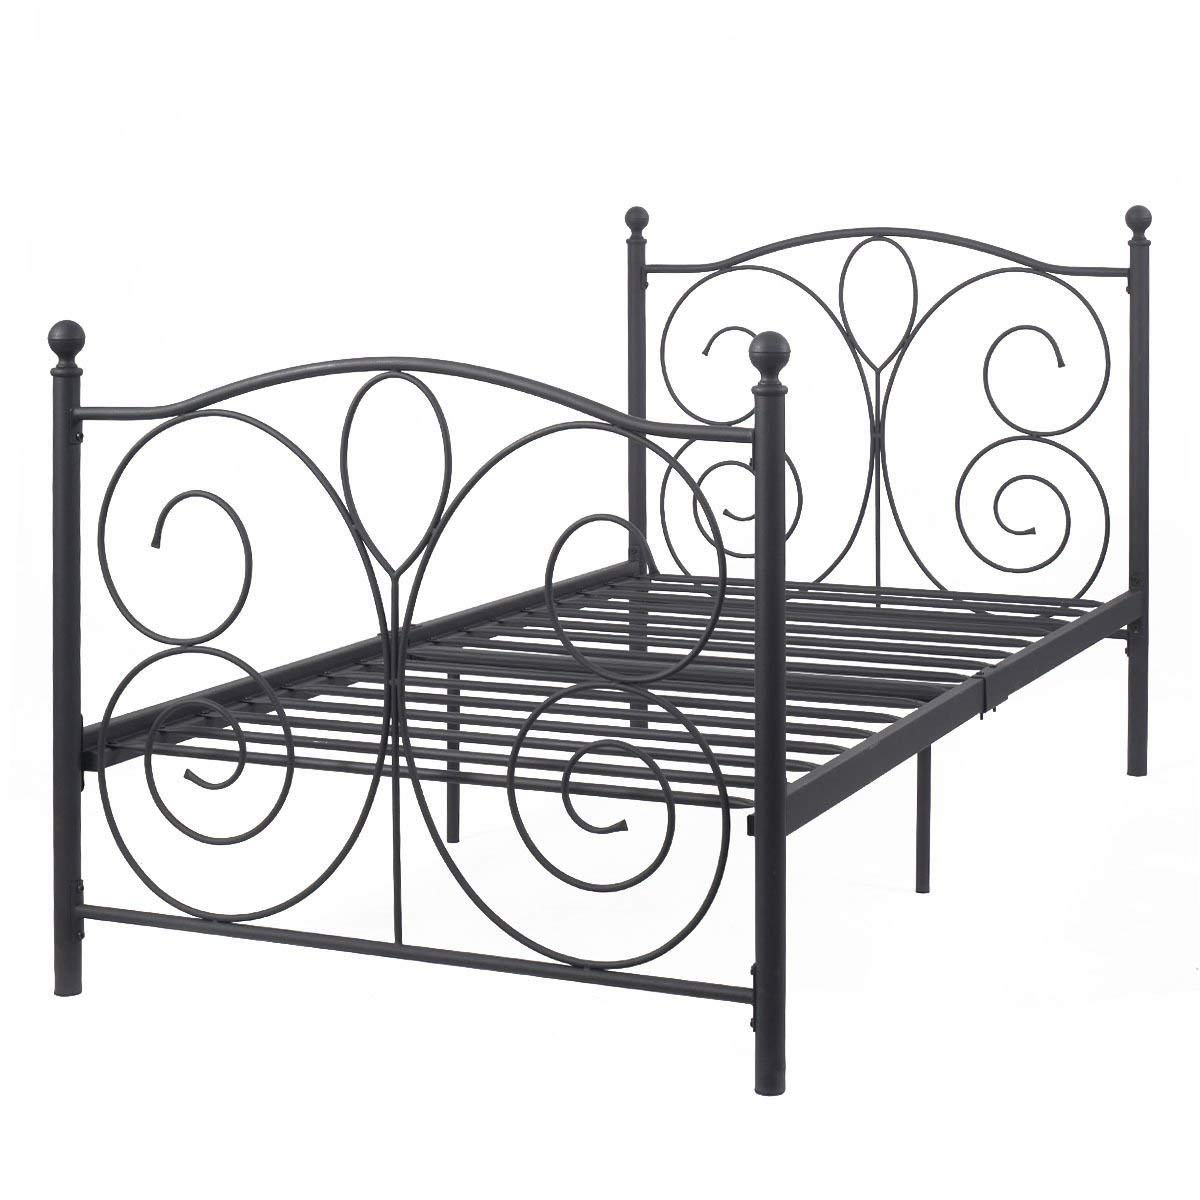 Cheap Twin Bed Frame For Sale, find Twin Bed Frame For Sale deals on ...